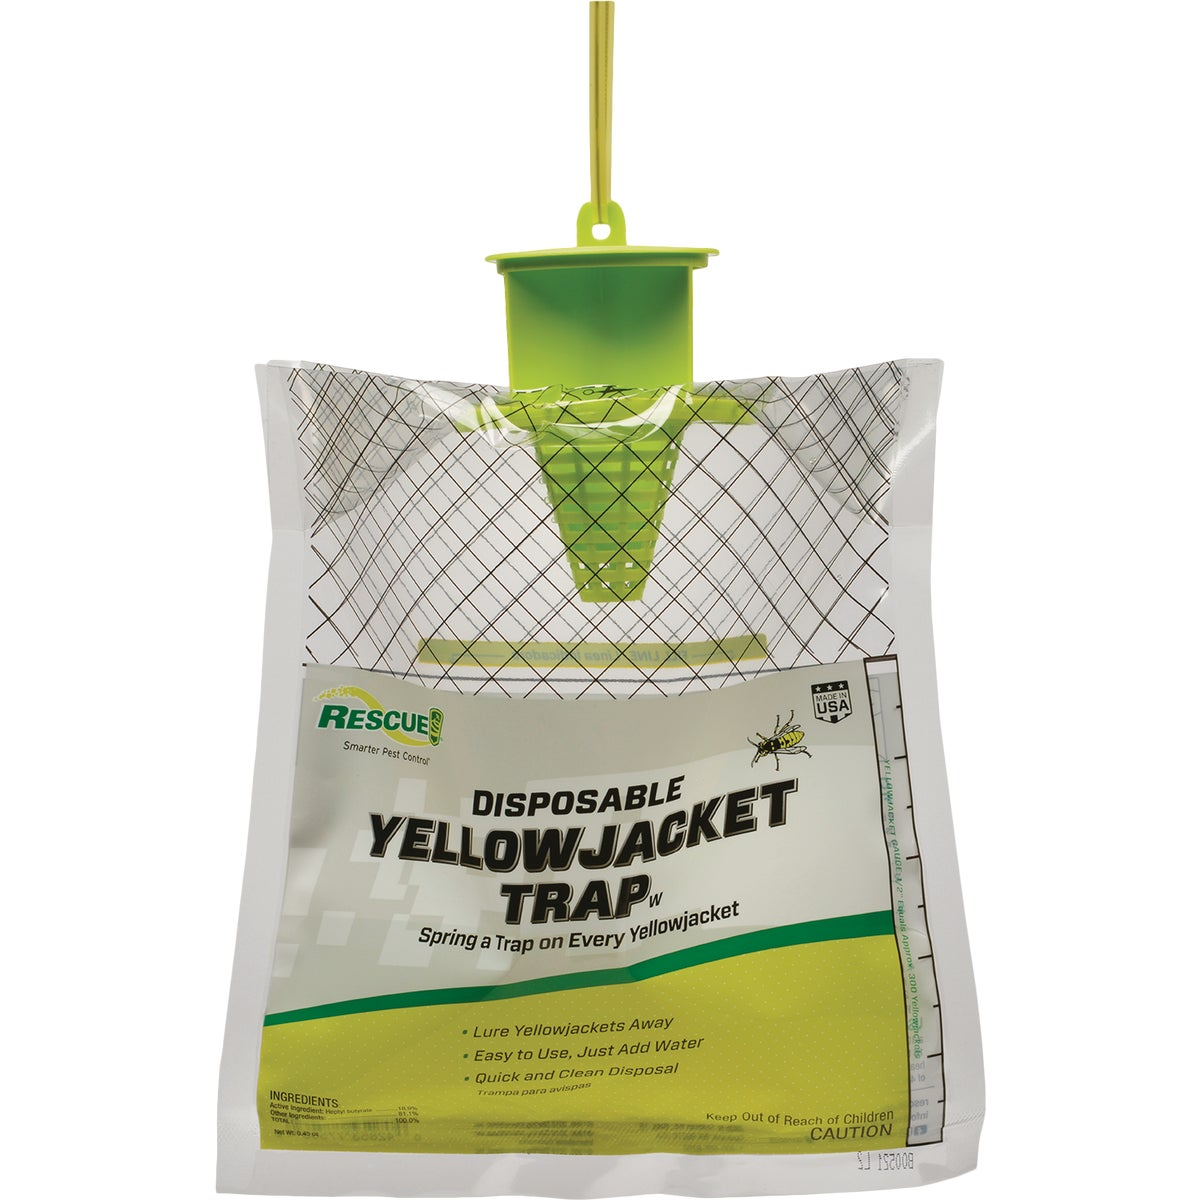 DISPOS YELLOWJACKET TRAP - YJTD-DB12-W by Sterling Intl